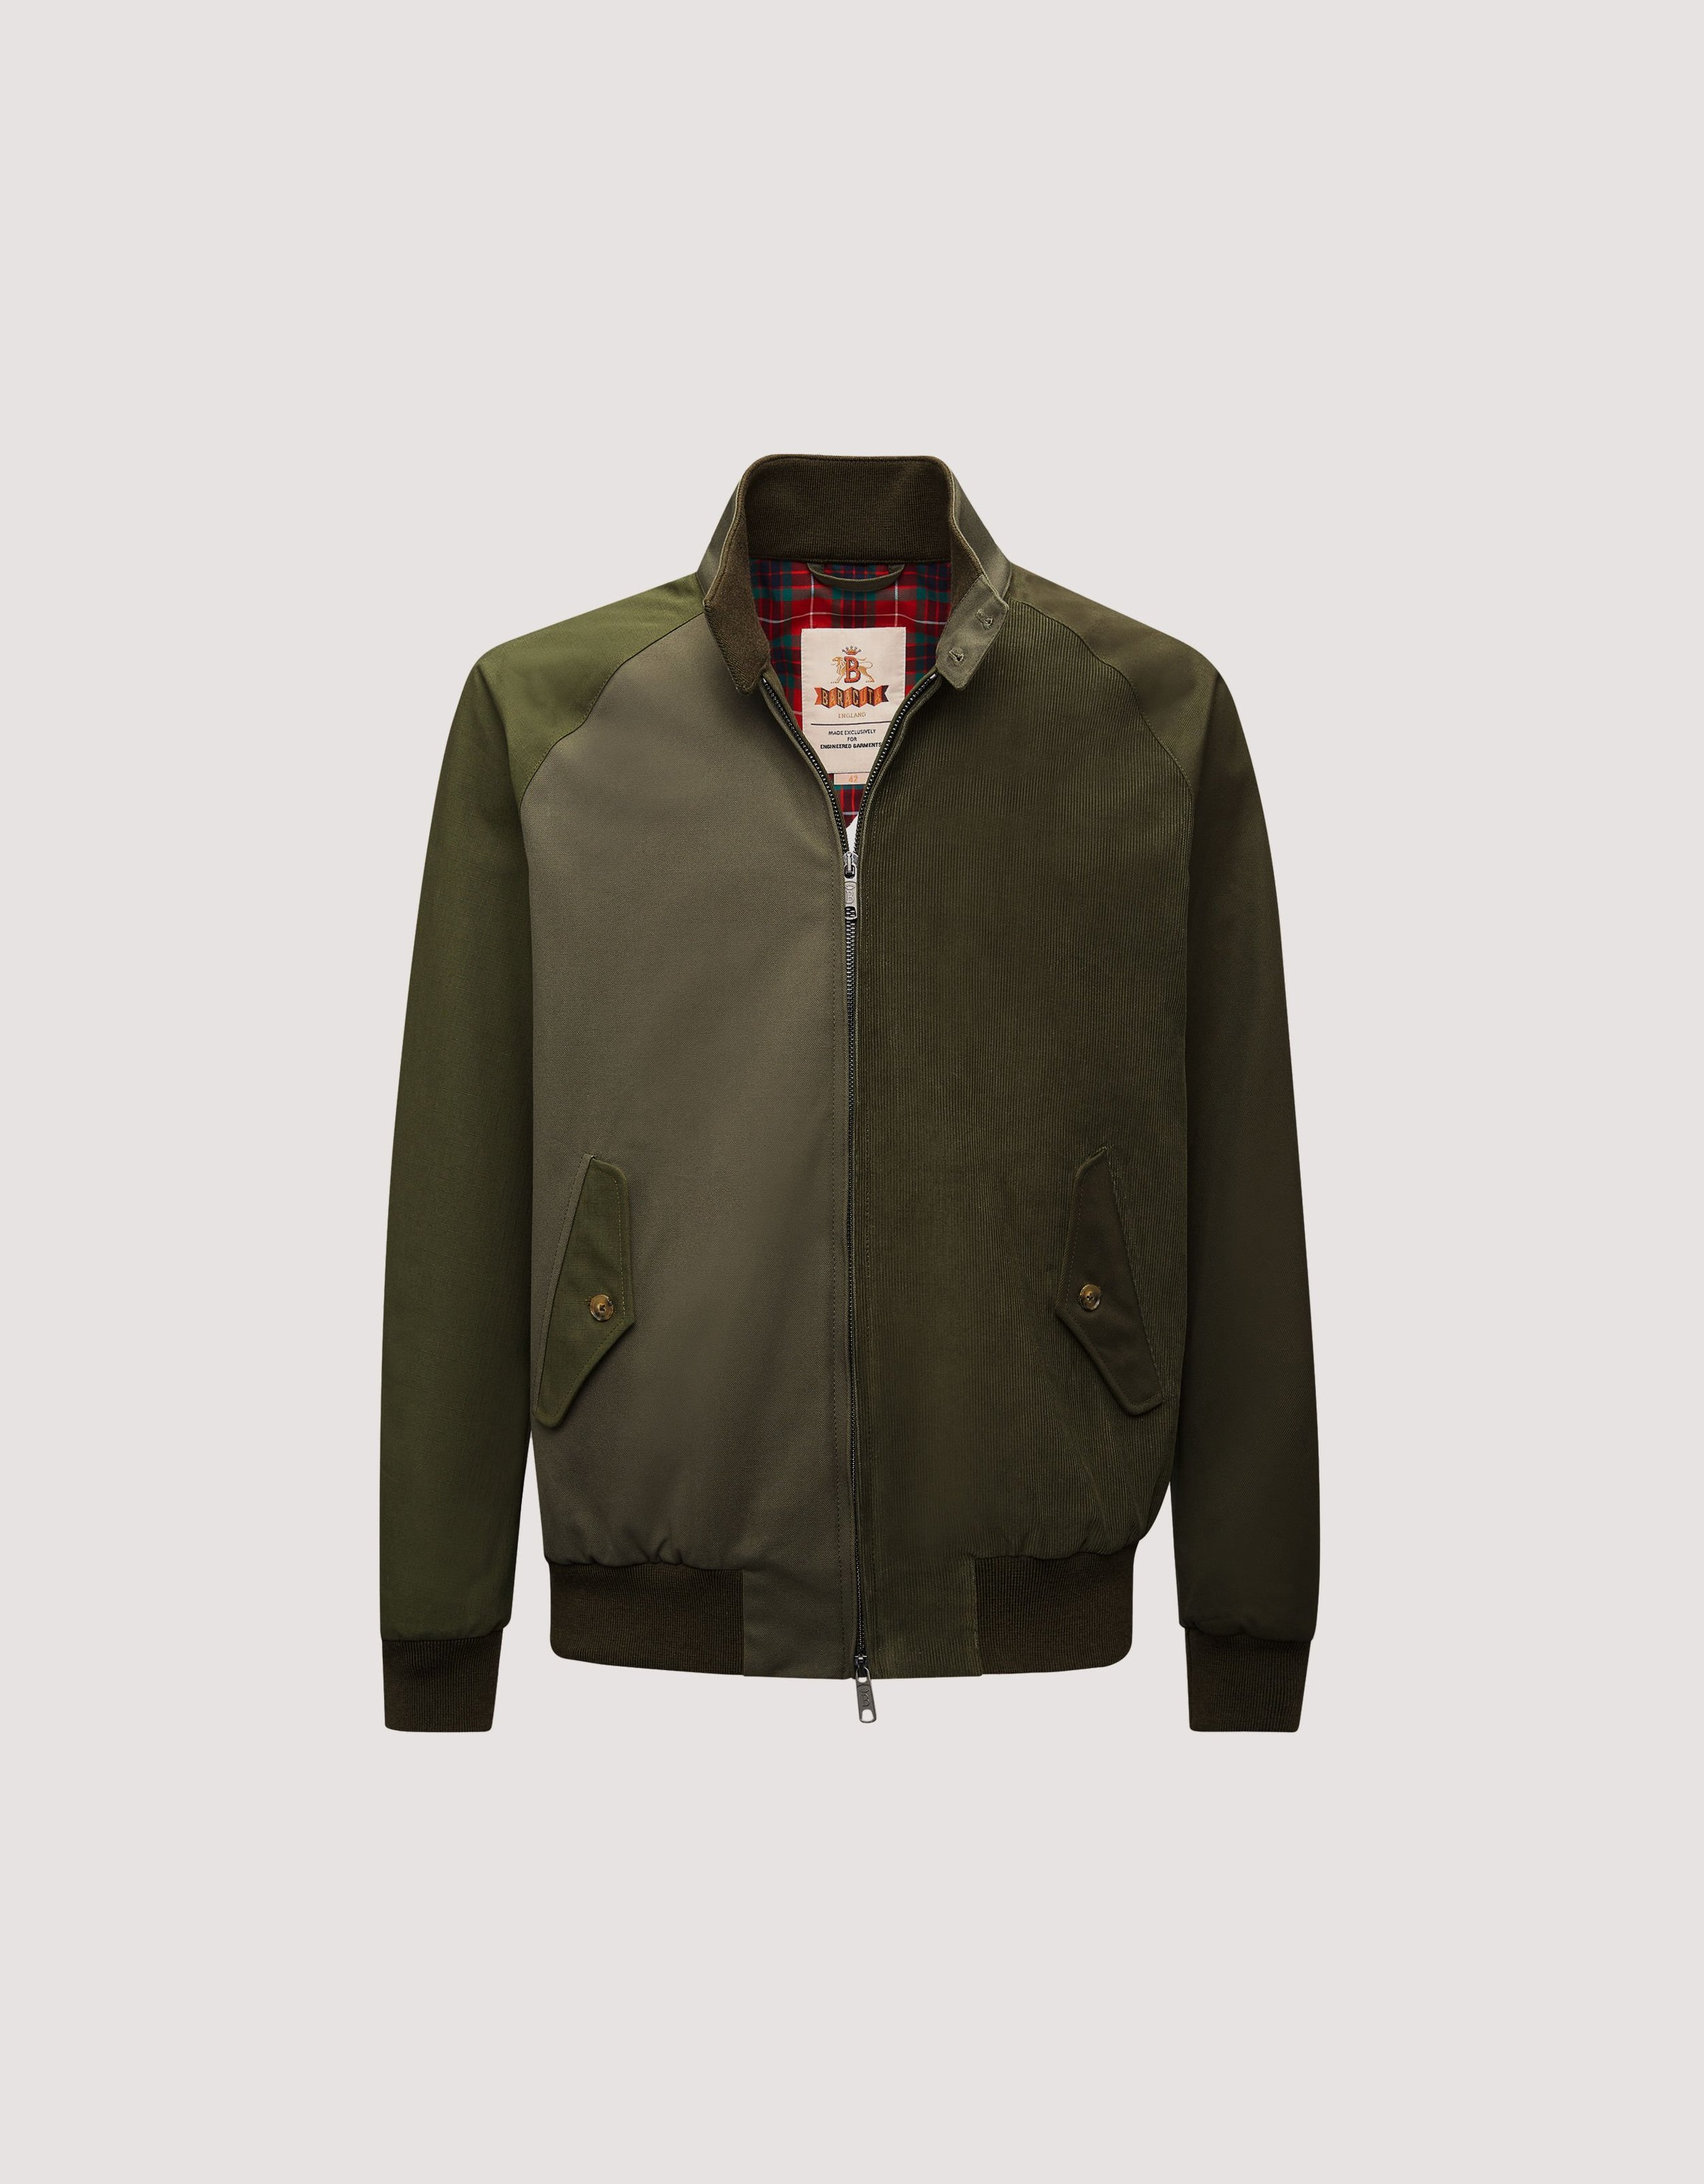 Engineered Garments x Baracuta jacket - £480 - Obsessed with this wear anywhere, at any time, superbly fitted olive green bomber style jacket